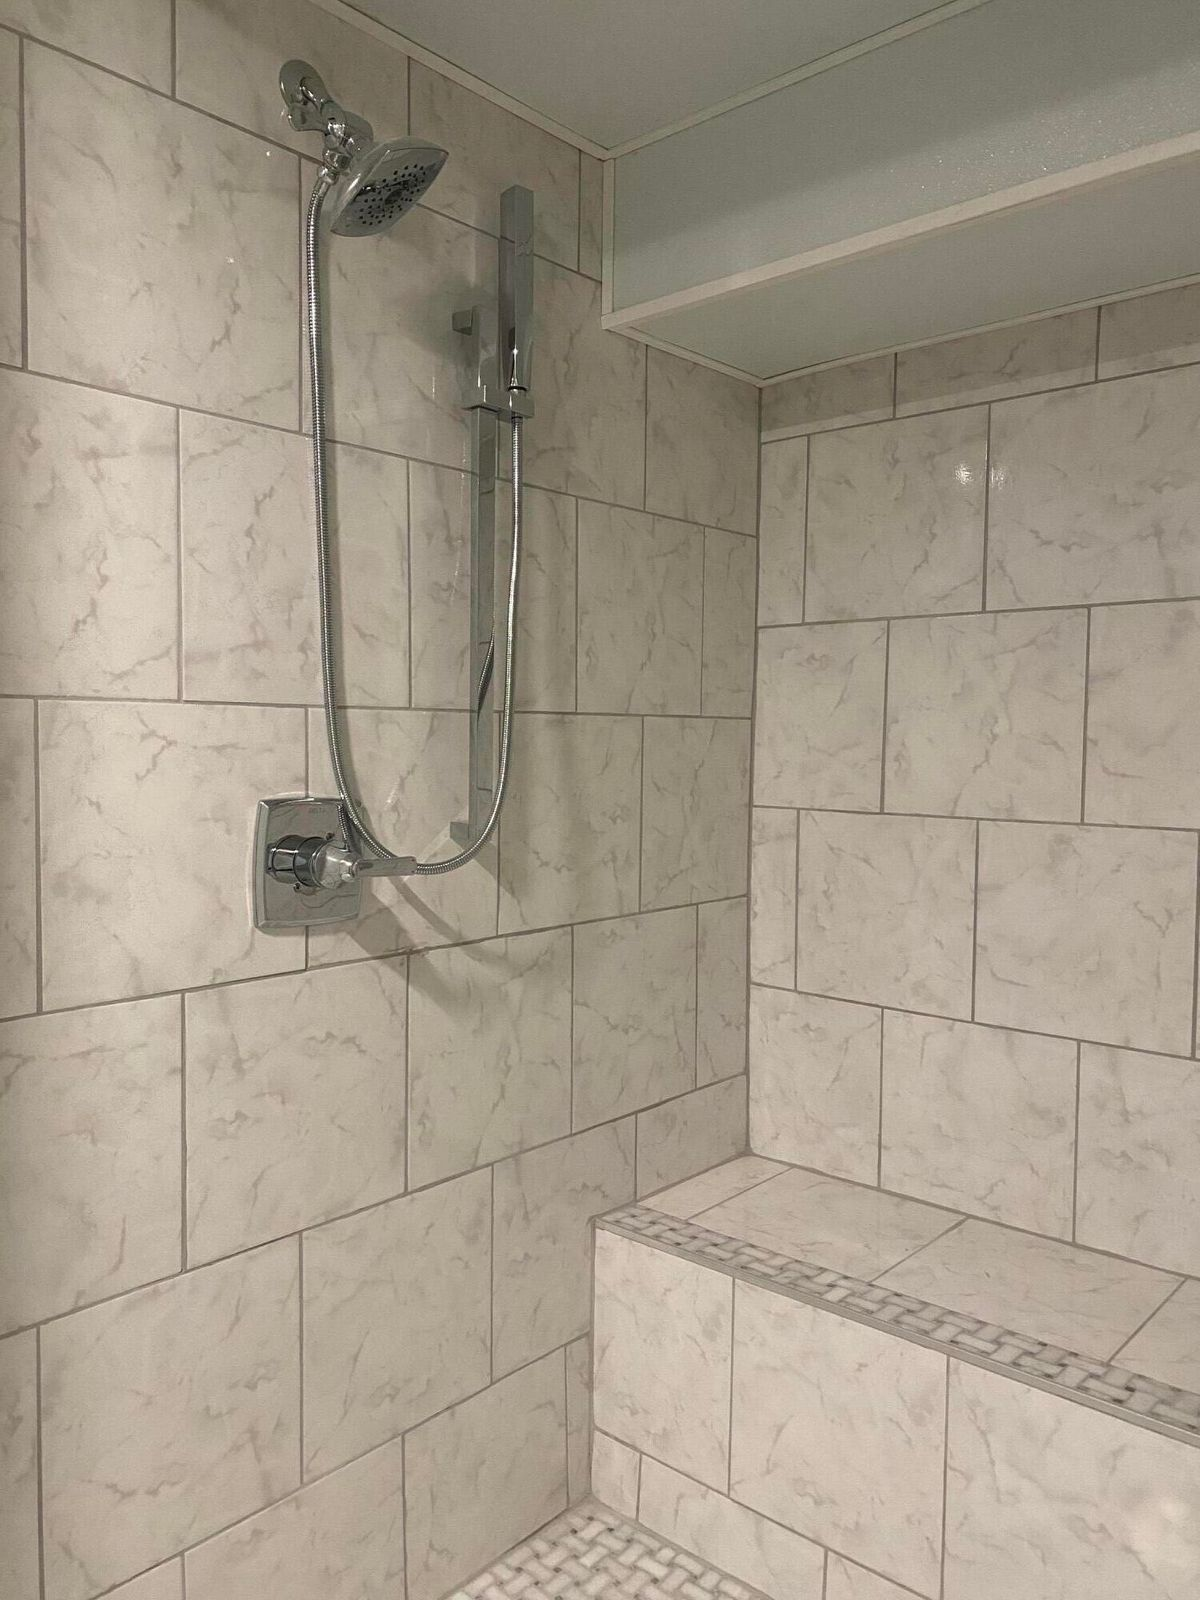 Downstairs Owner's shower